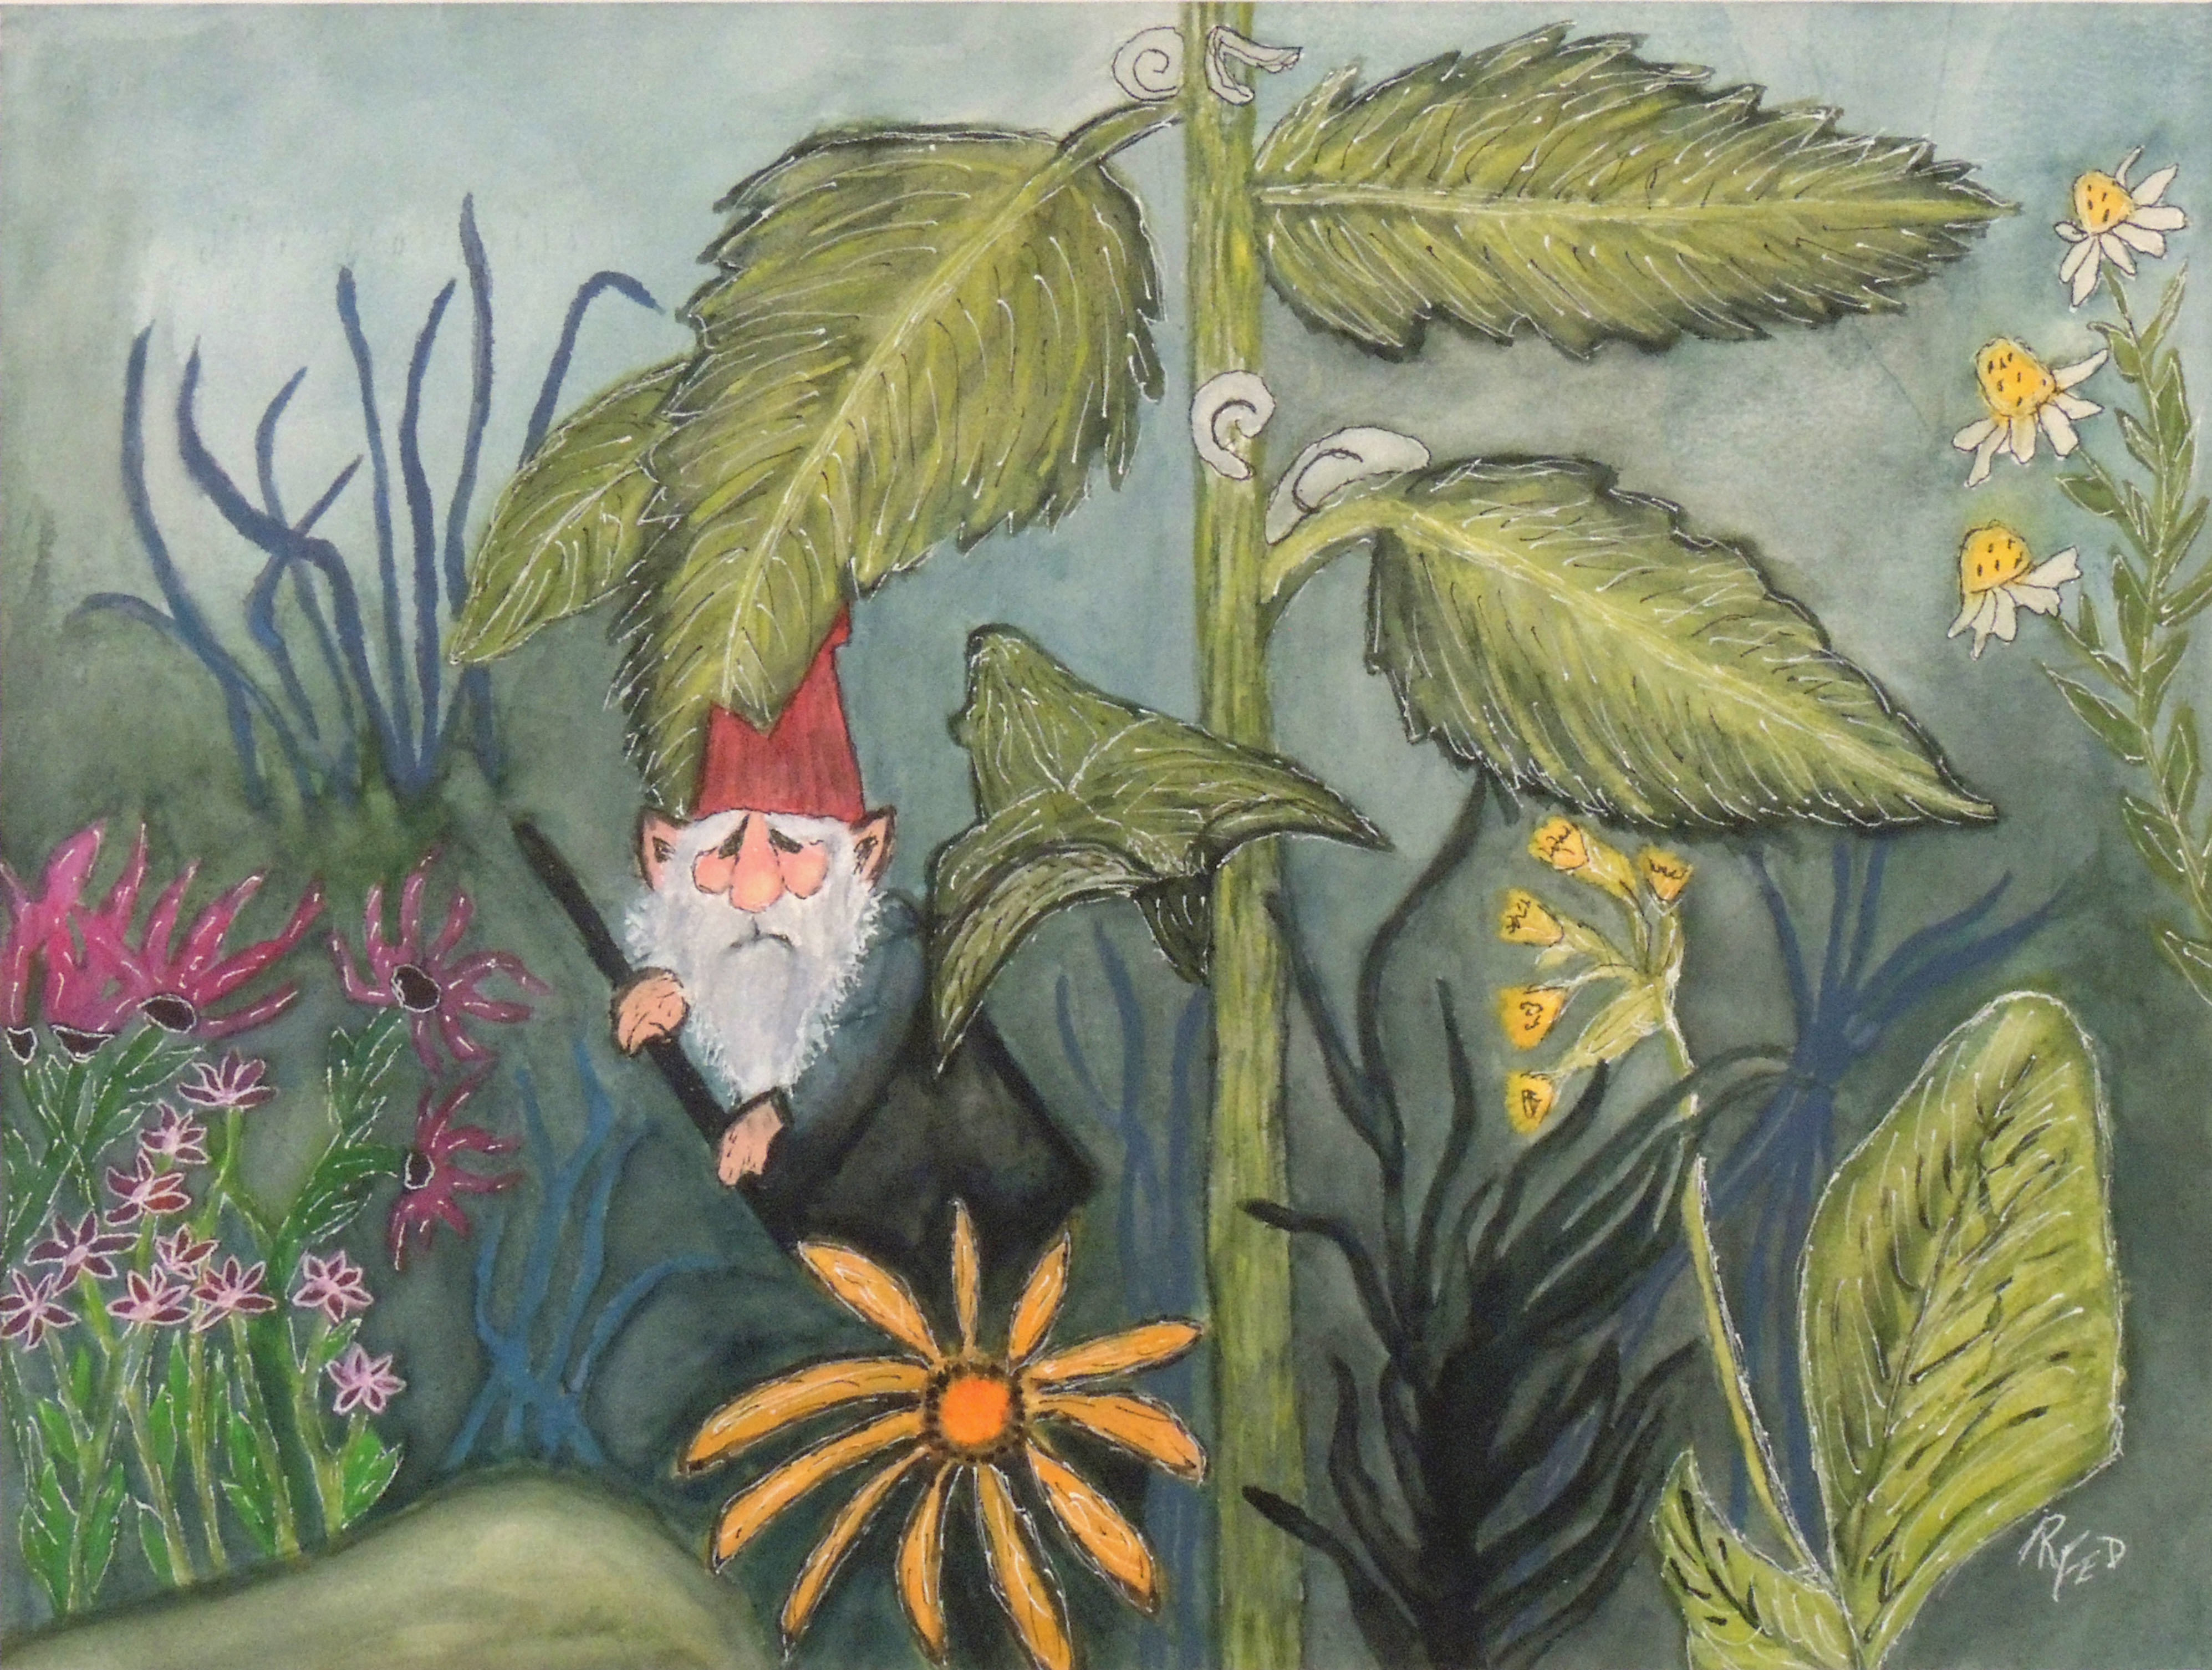 Rosemary Federer | GNOME SWEET GNOME | Watercolor